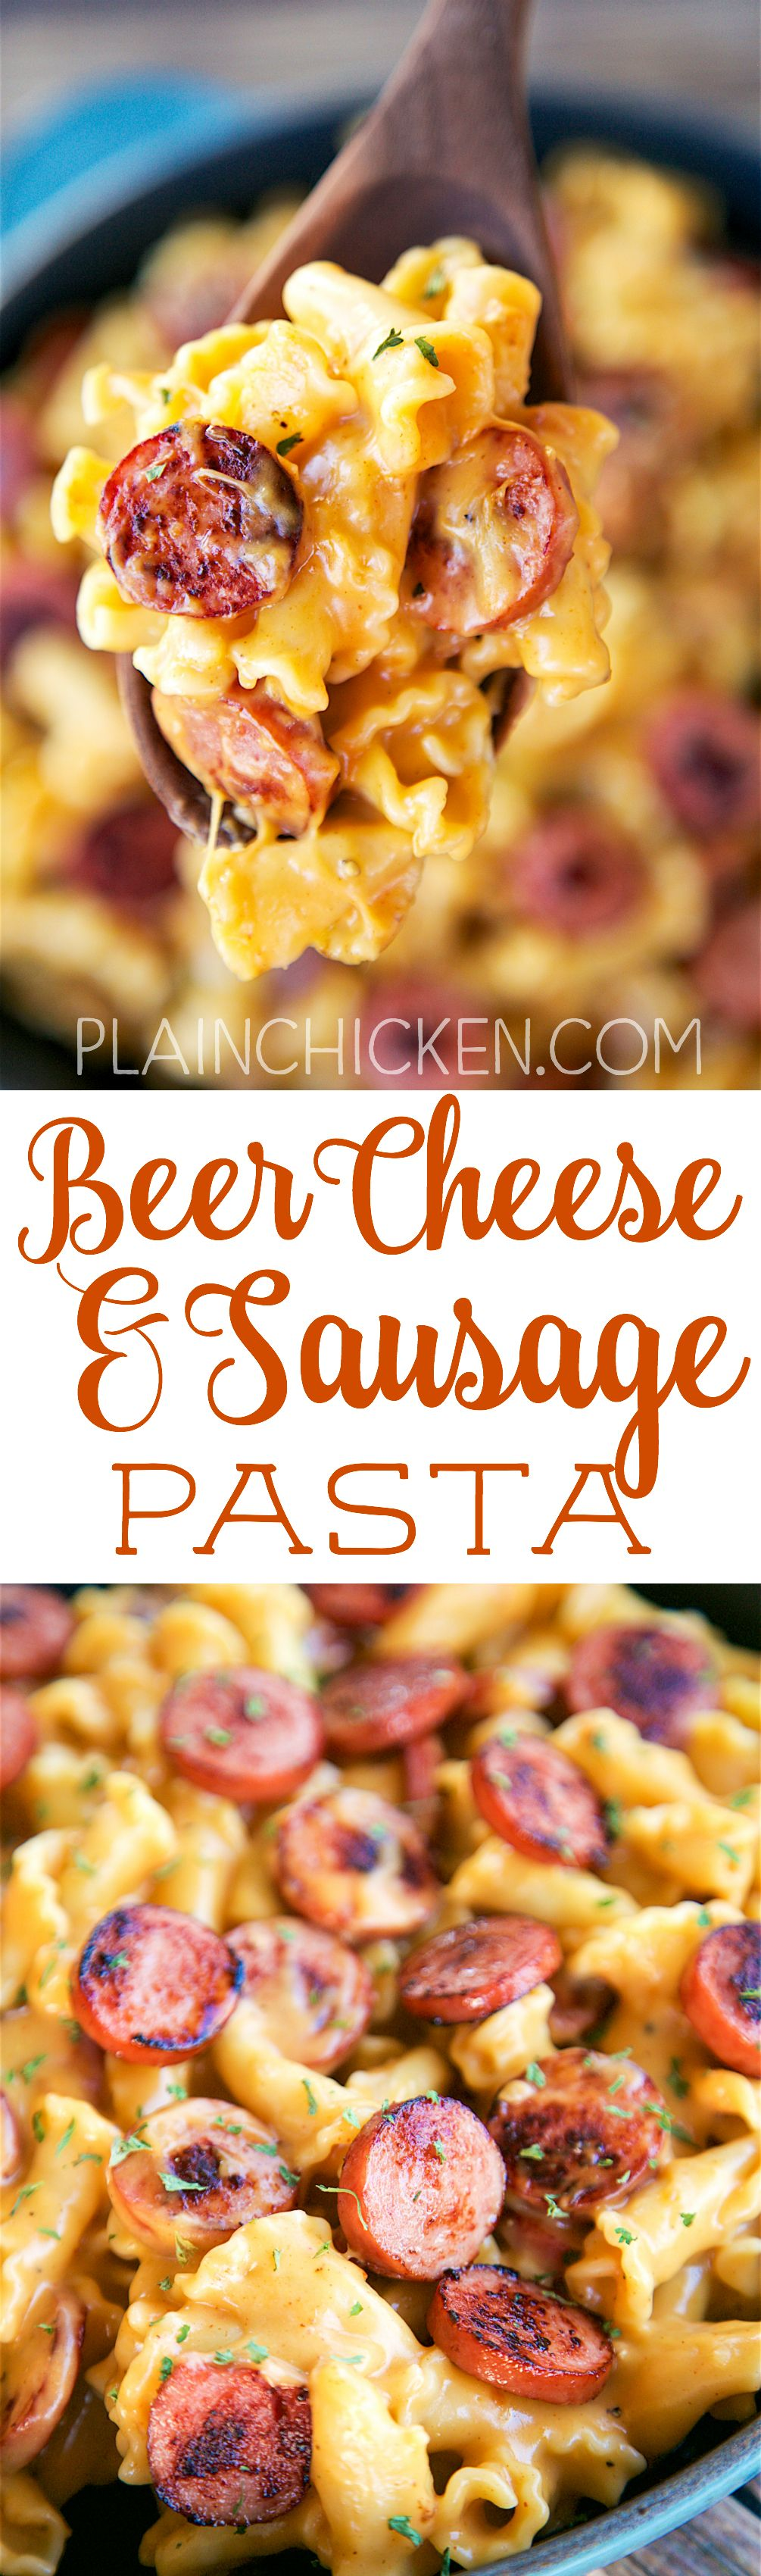 Photo of Beer Cheese and Sausage Pasta – Plain Chicken